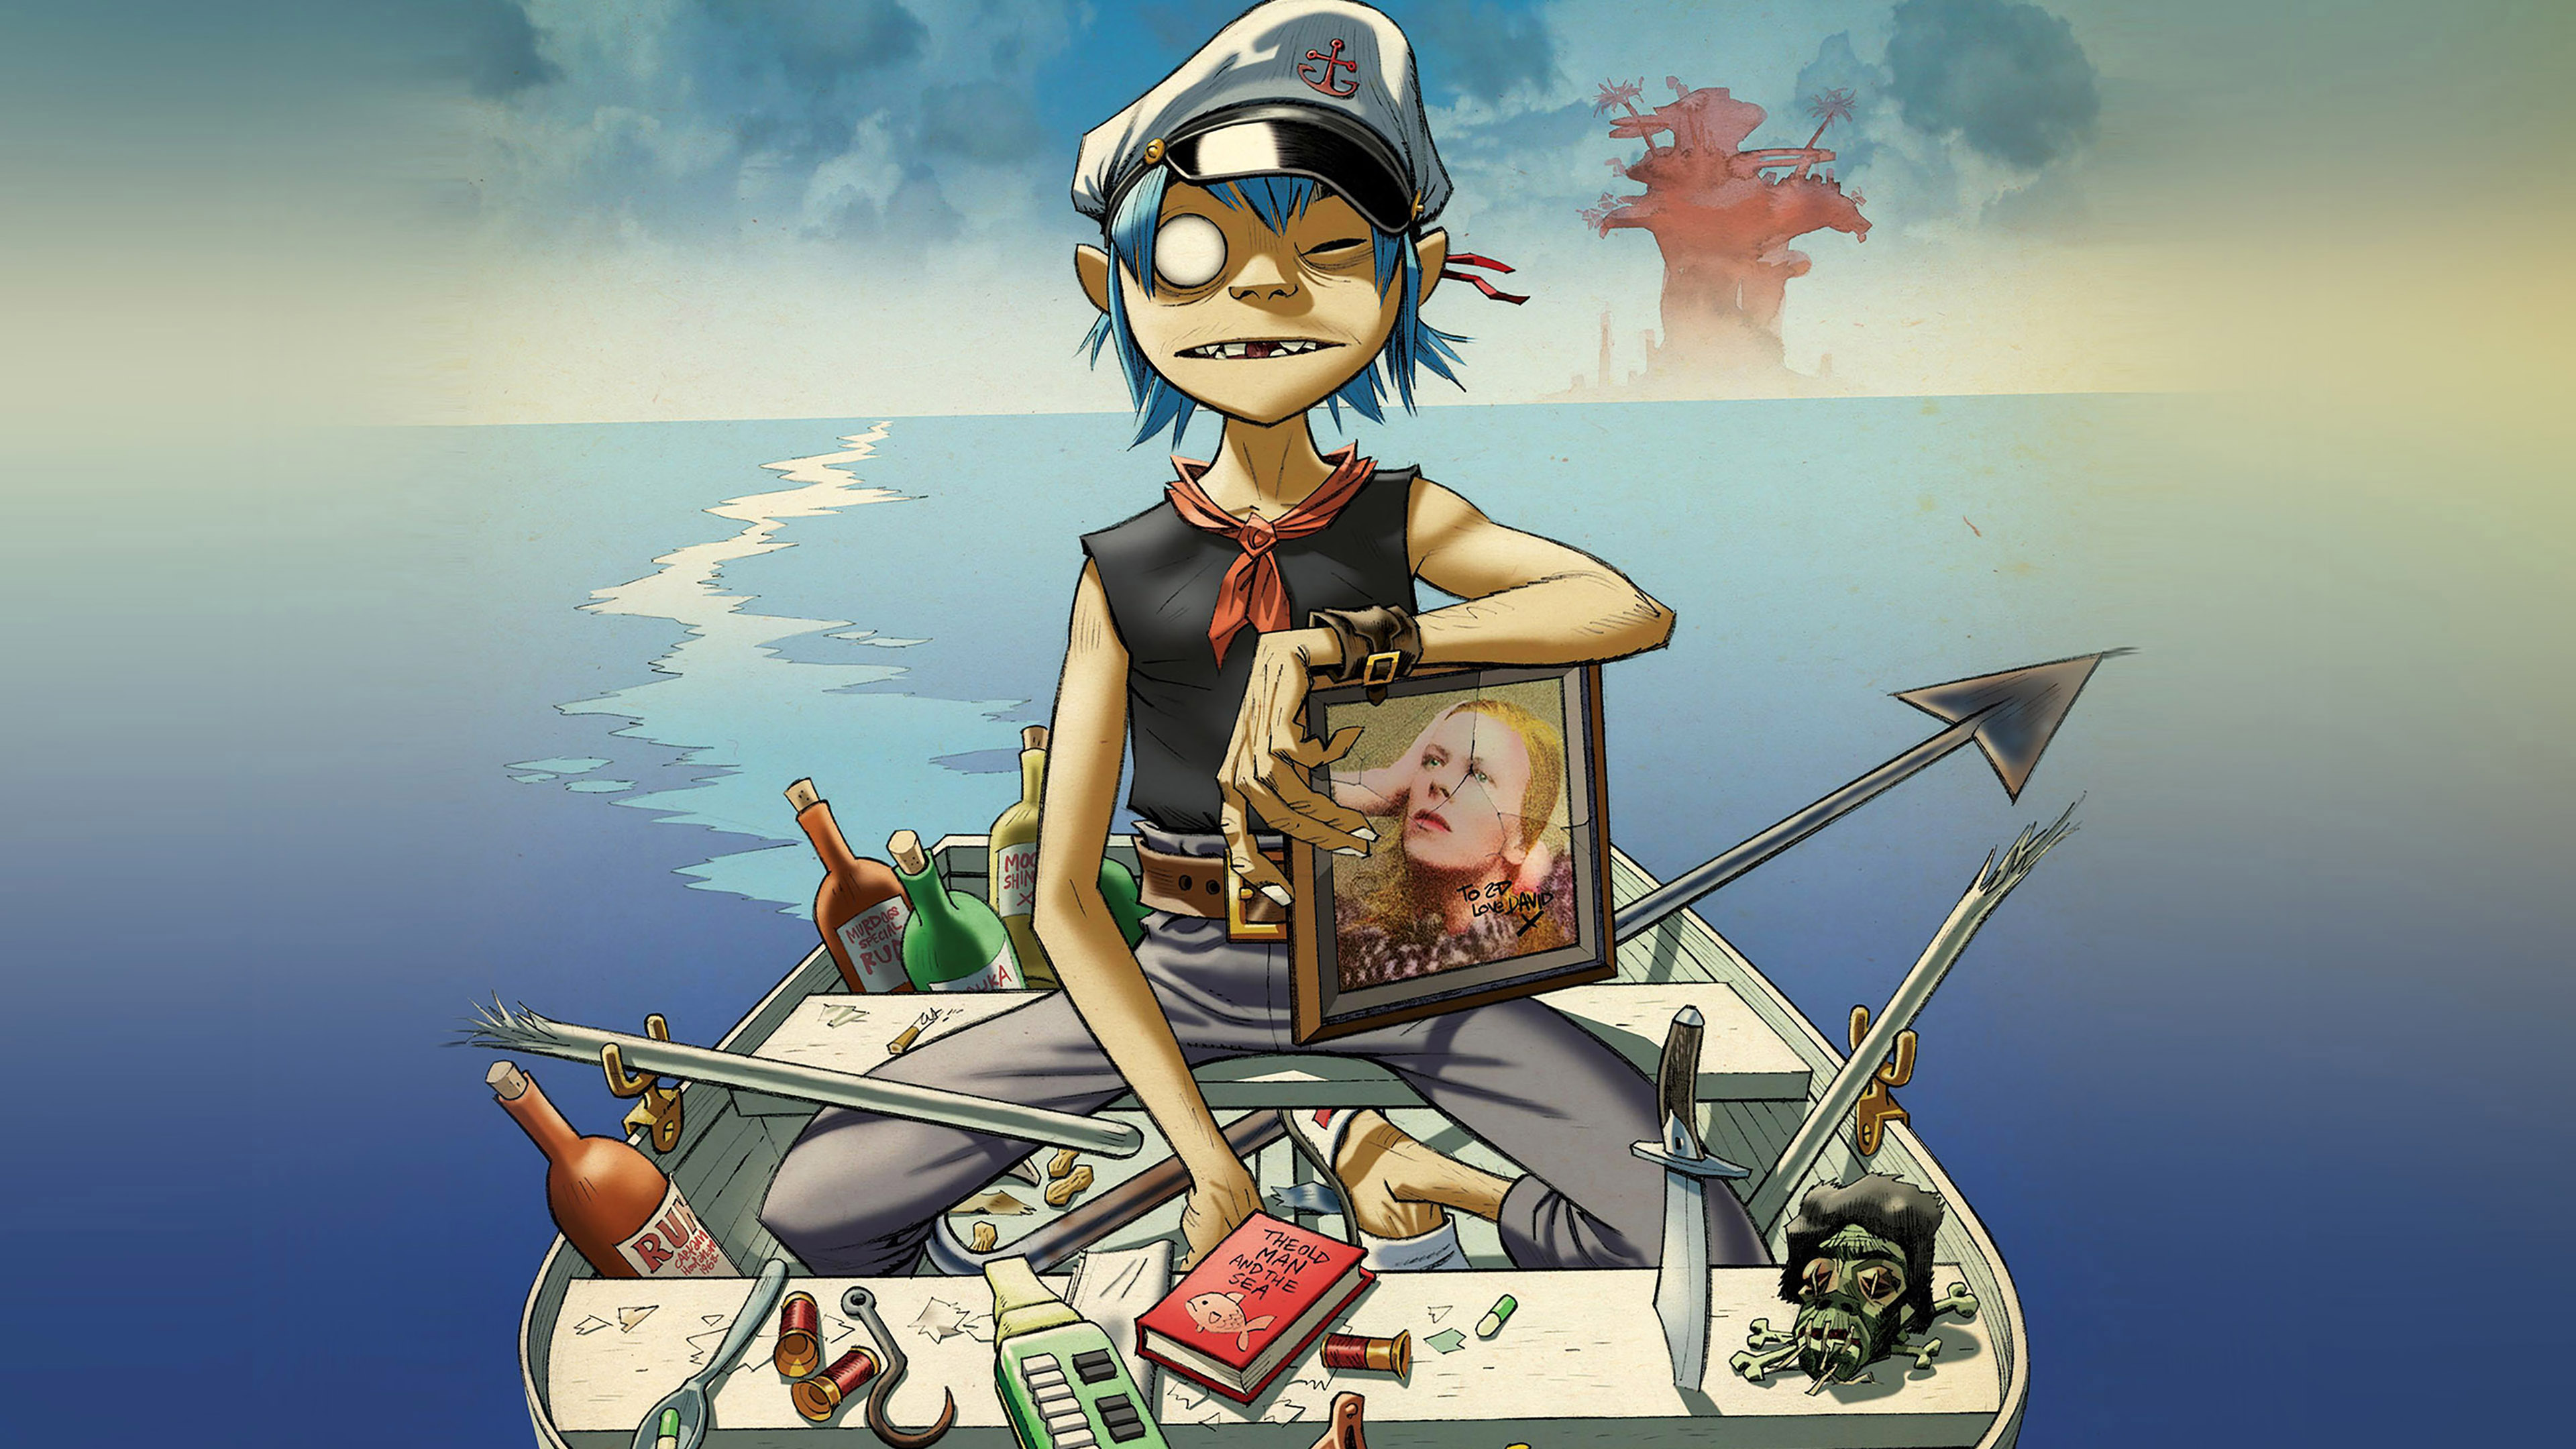 Fall Computer Wallpaper Images Ab05 Wallpaper Gorillaz Boat Illust Music Papers Co